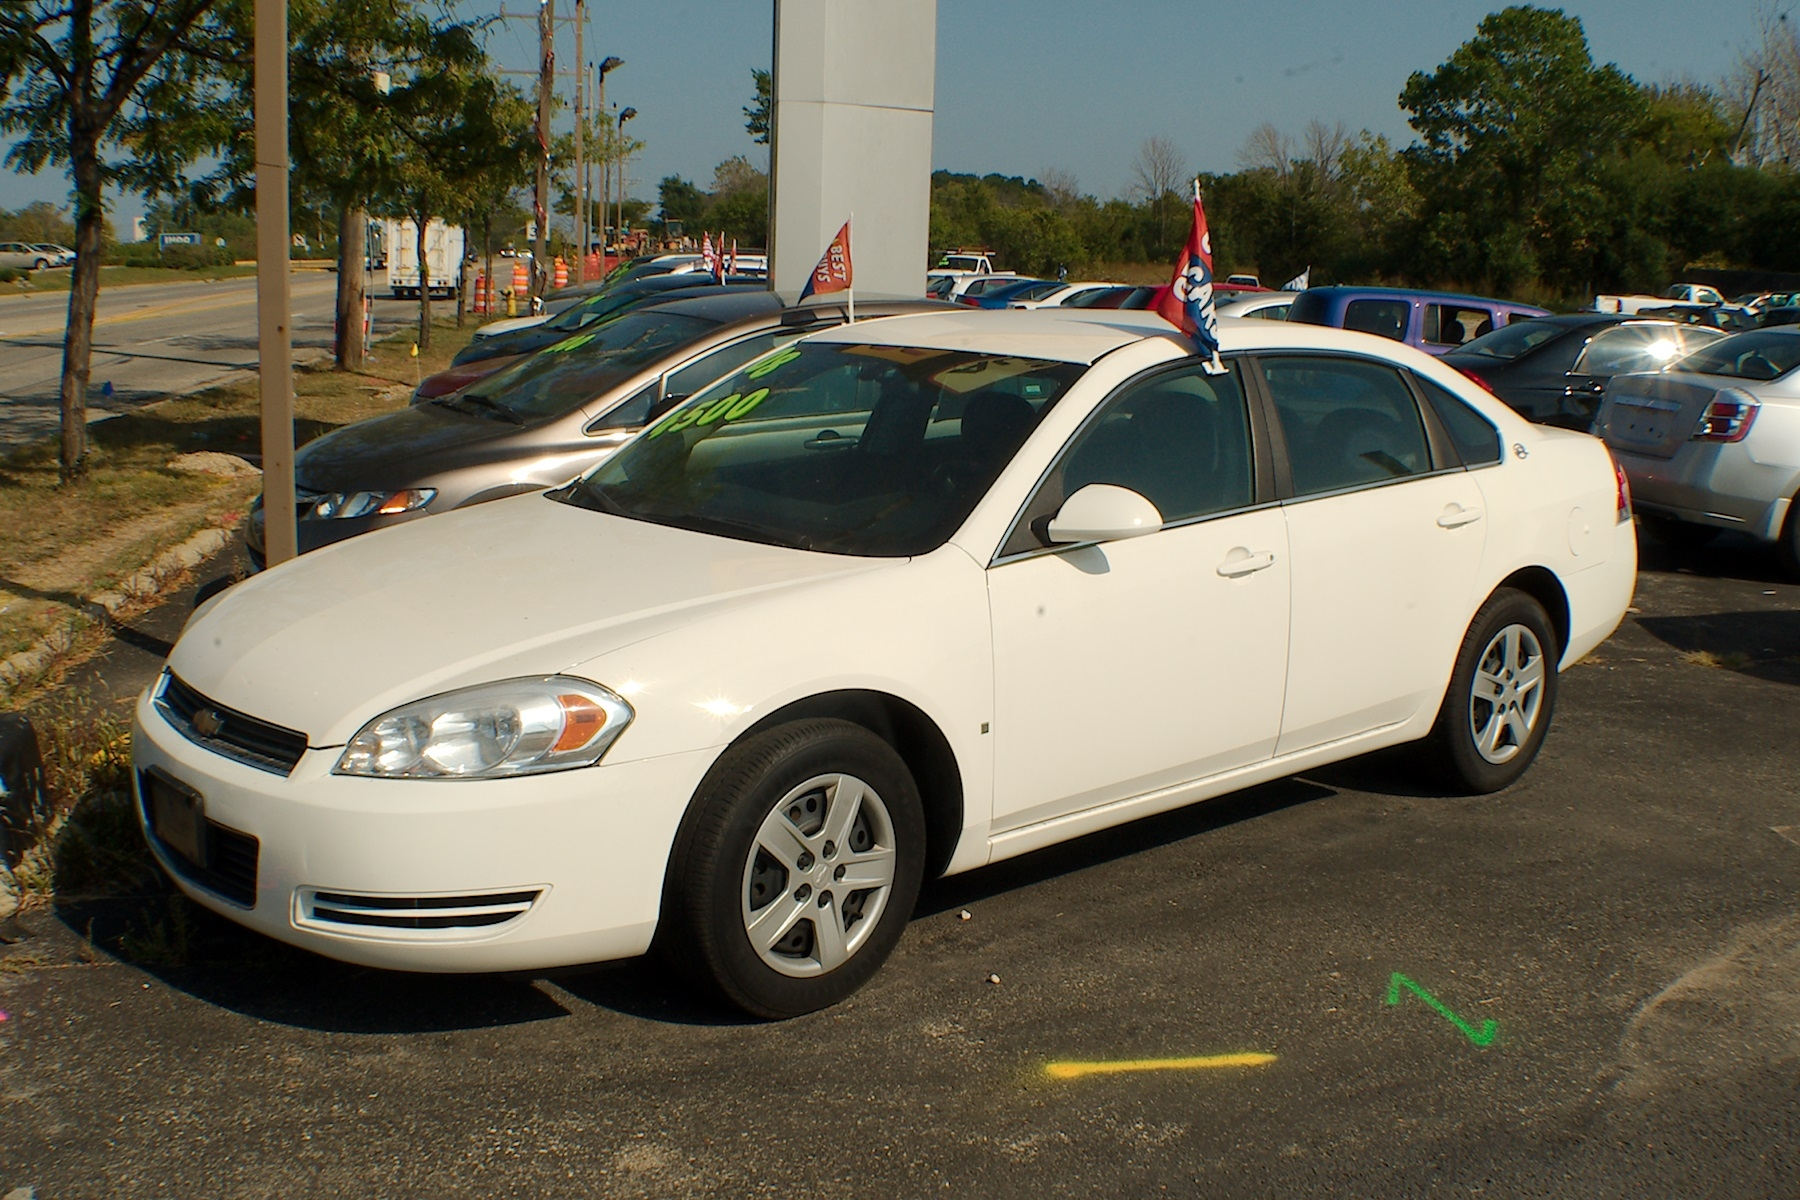 2008 Chevrolet Impala White Sedan Used Car Sale Antioch Zion Waukegan Lake County Illinois